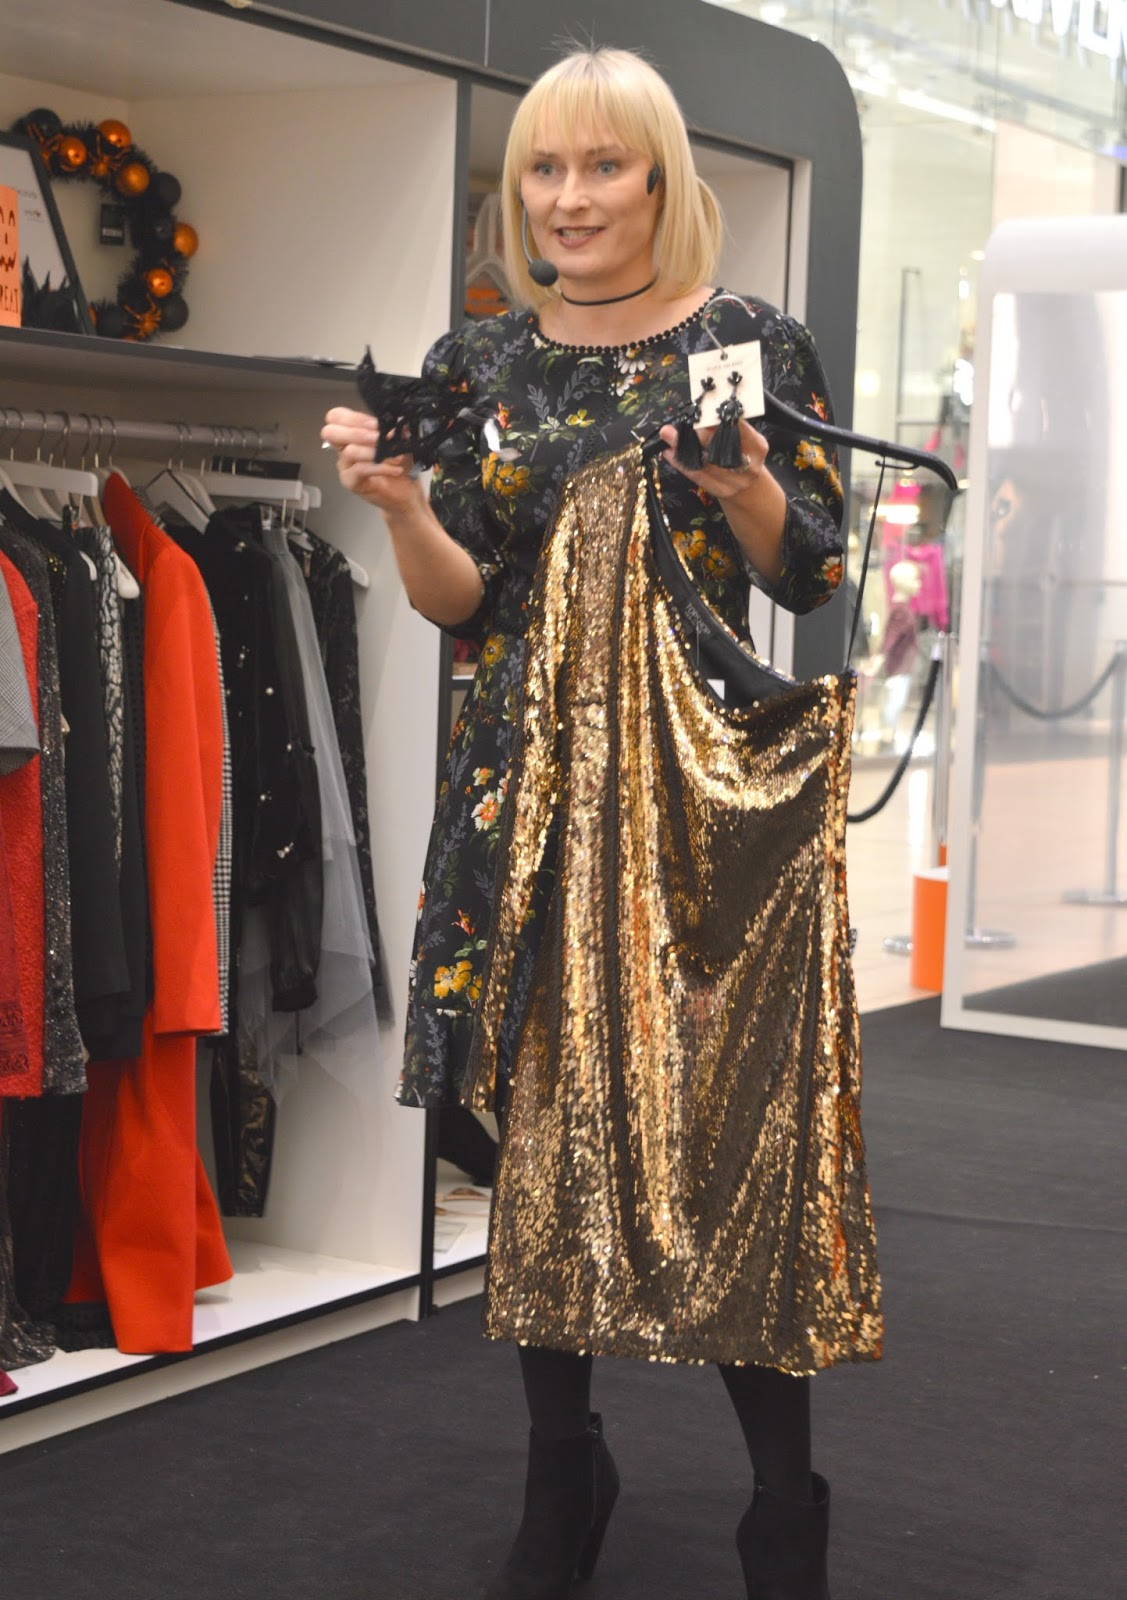 The Fashion Spooktacular Intu Eldon Square  - Halloween